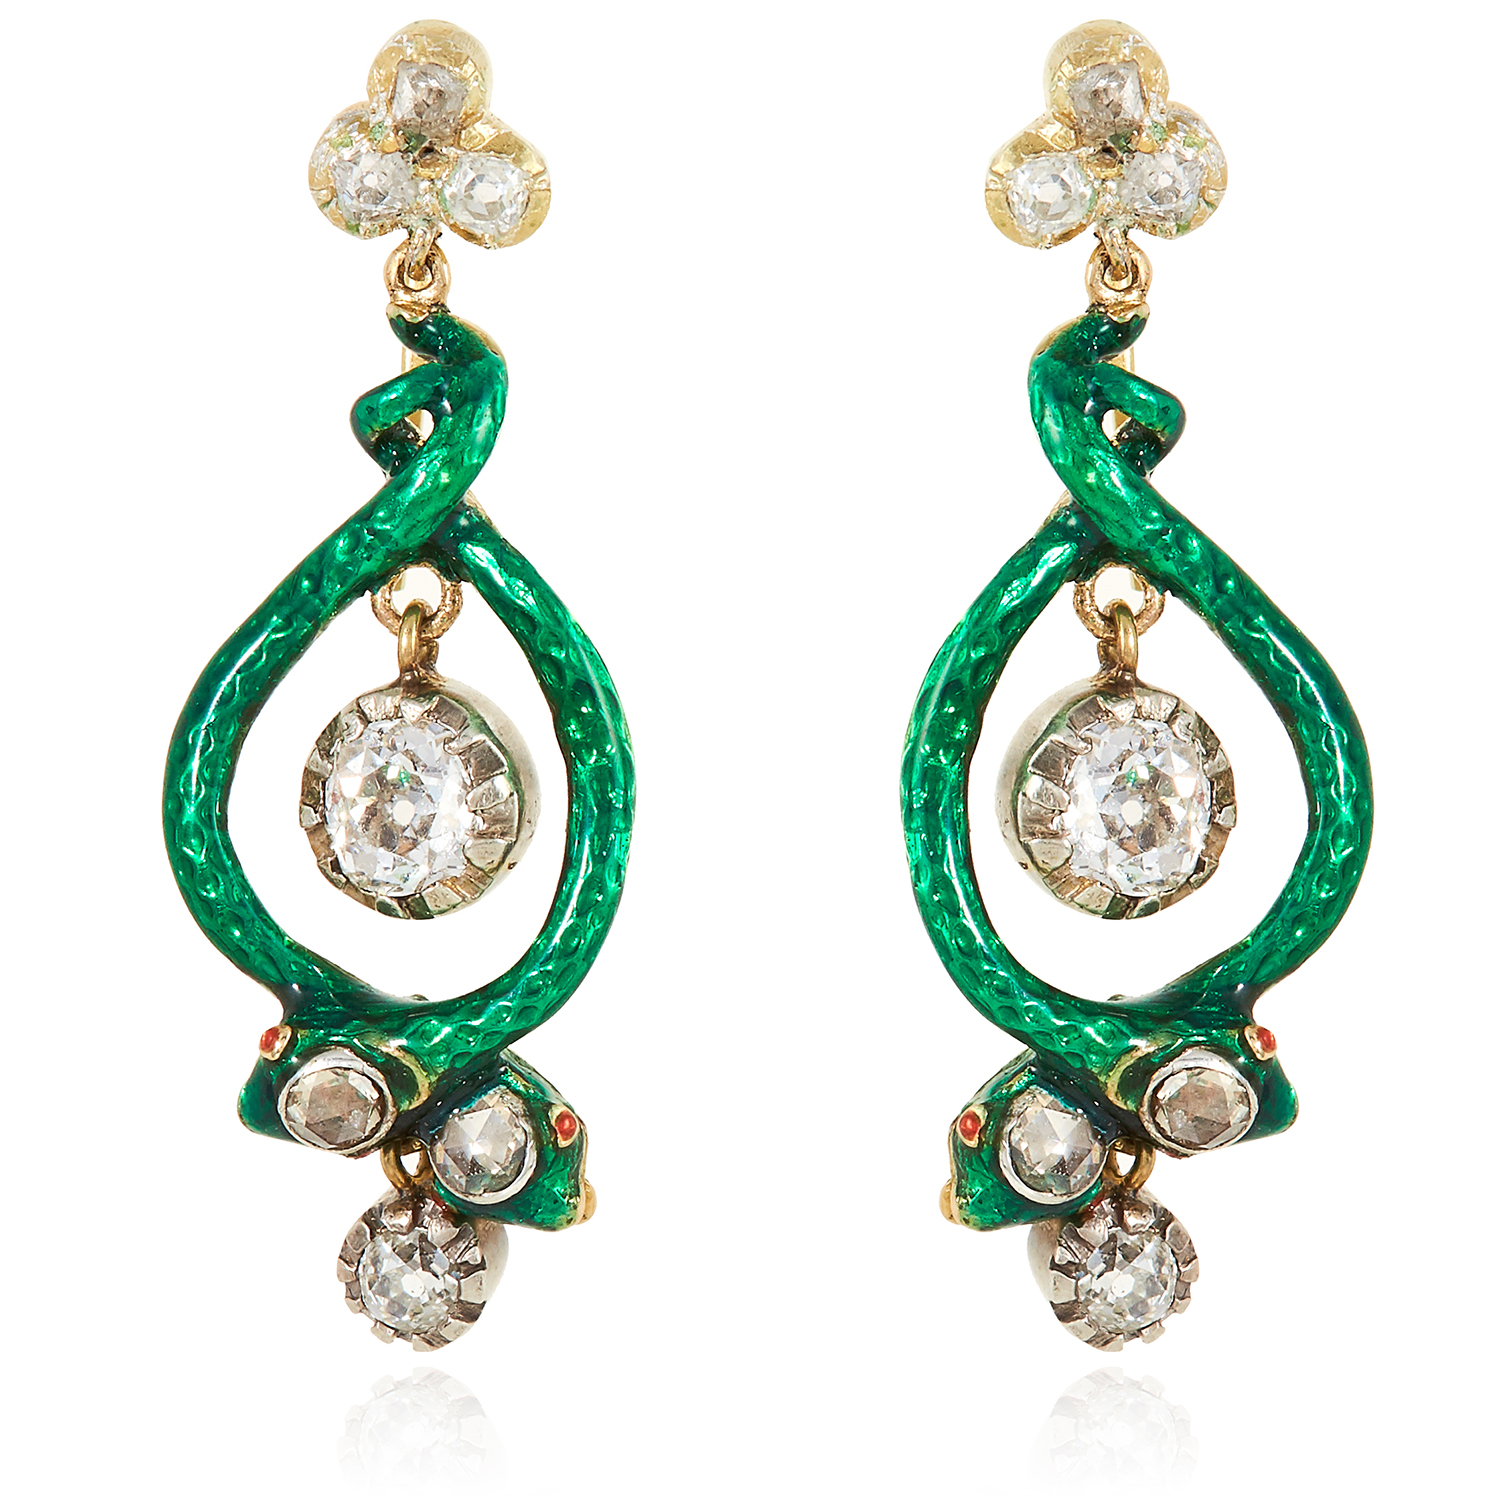 Los 43 - A PAIR OF ANTIQUE DIAMOND AND ENAMEL SNAKE EARRINGS in high carat yellow gold and silver, each